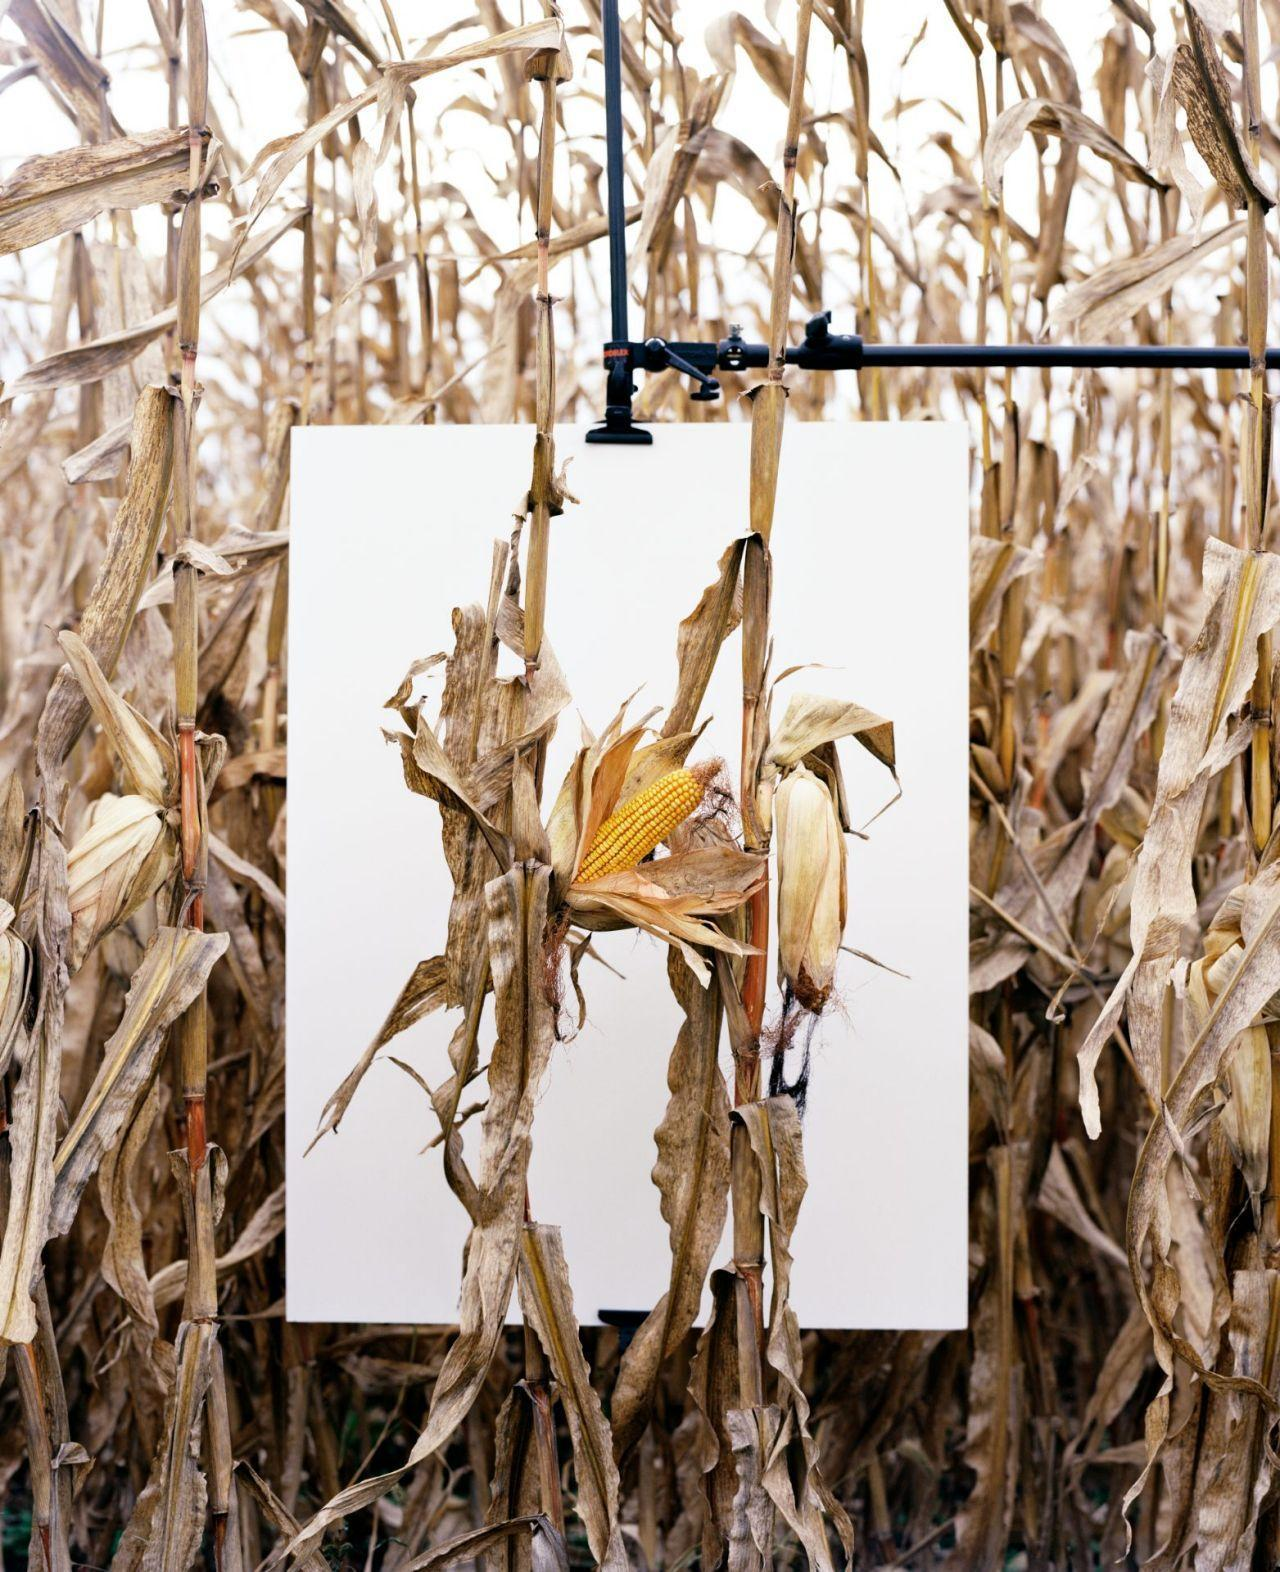 Monsanto®: A Photographic Investigation - Mathieu Asselin